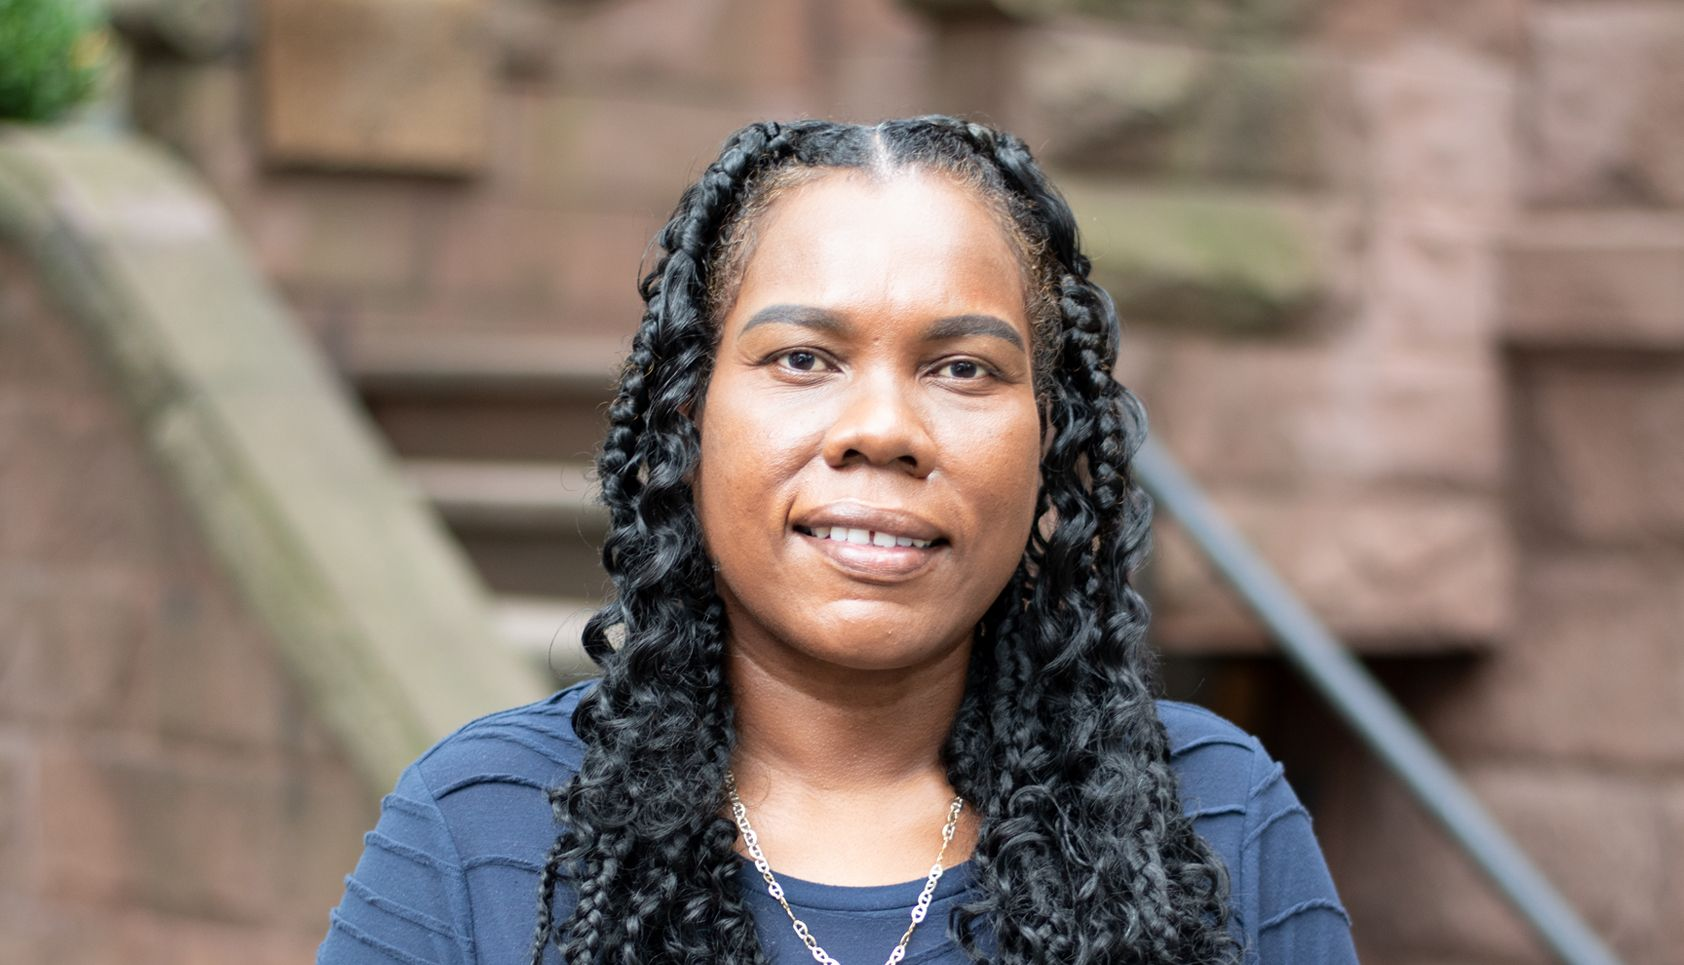 Bernadette Walcott is a Licensed Real Estate Salesperson at HomeDax Real Estate NYC. Contact Bernadette today to discuss your sale, purchase or rental needs.